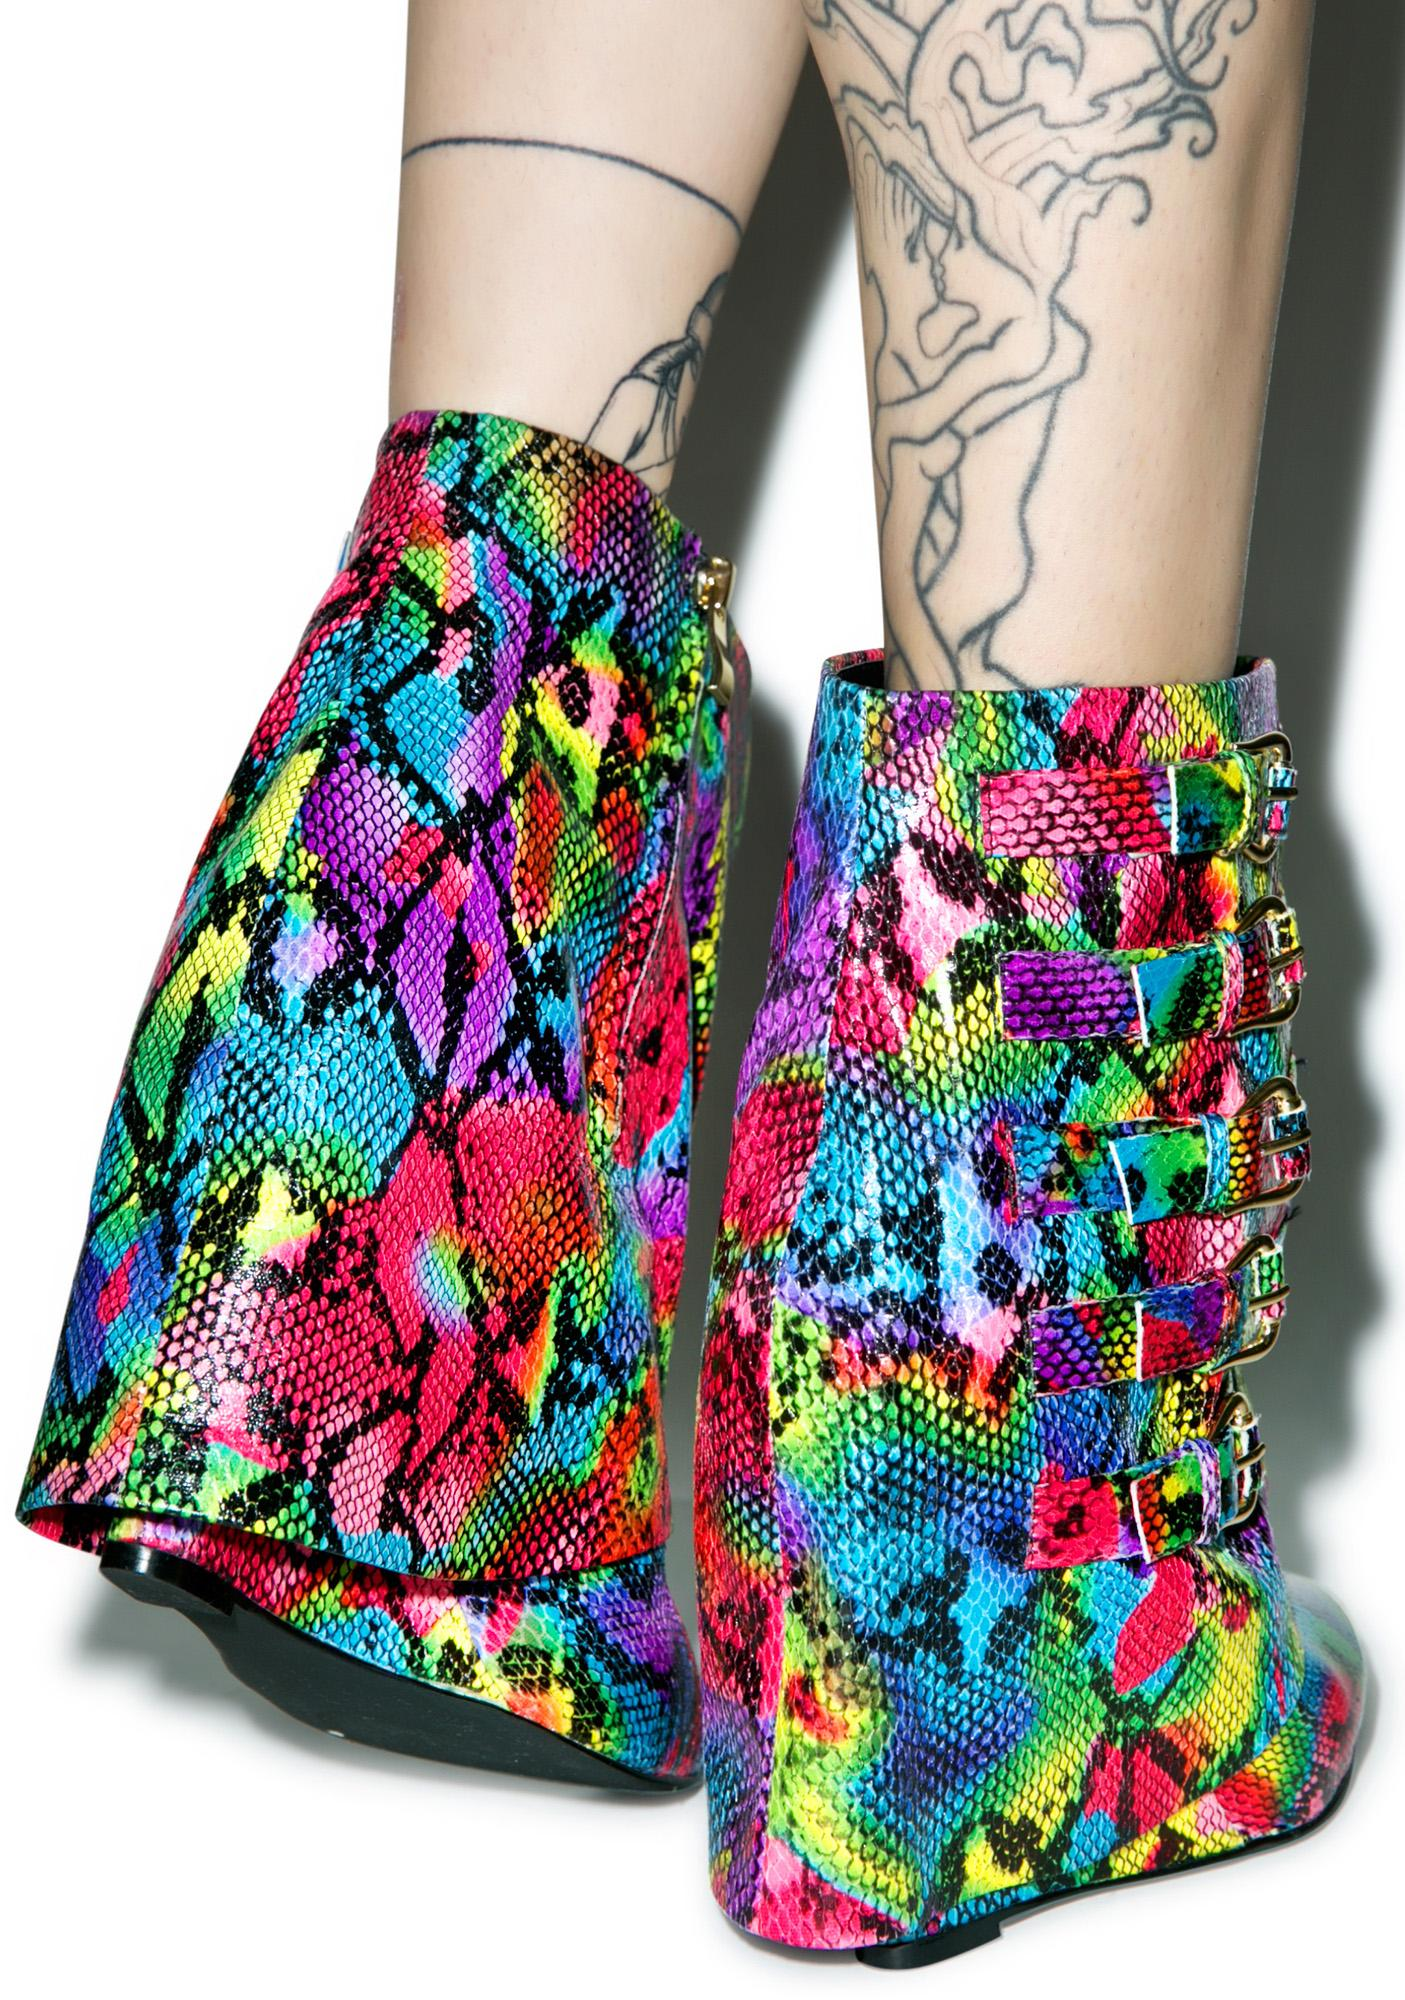 Rainbow Renegade Ankle Boots